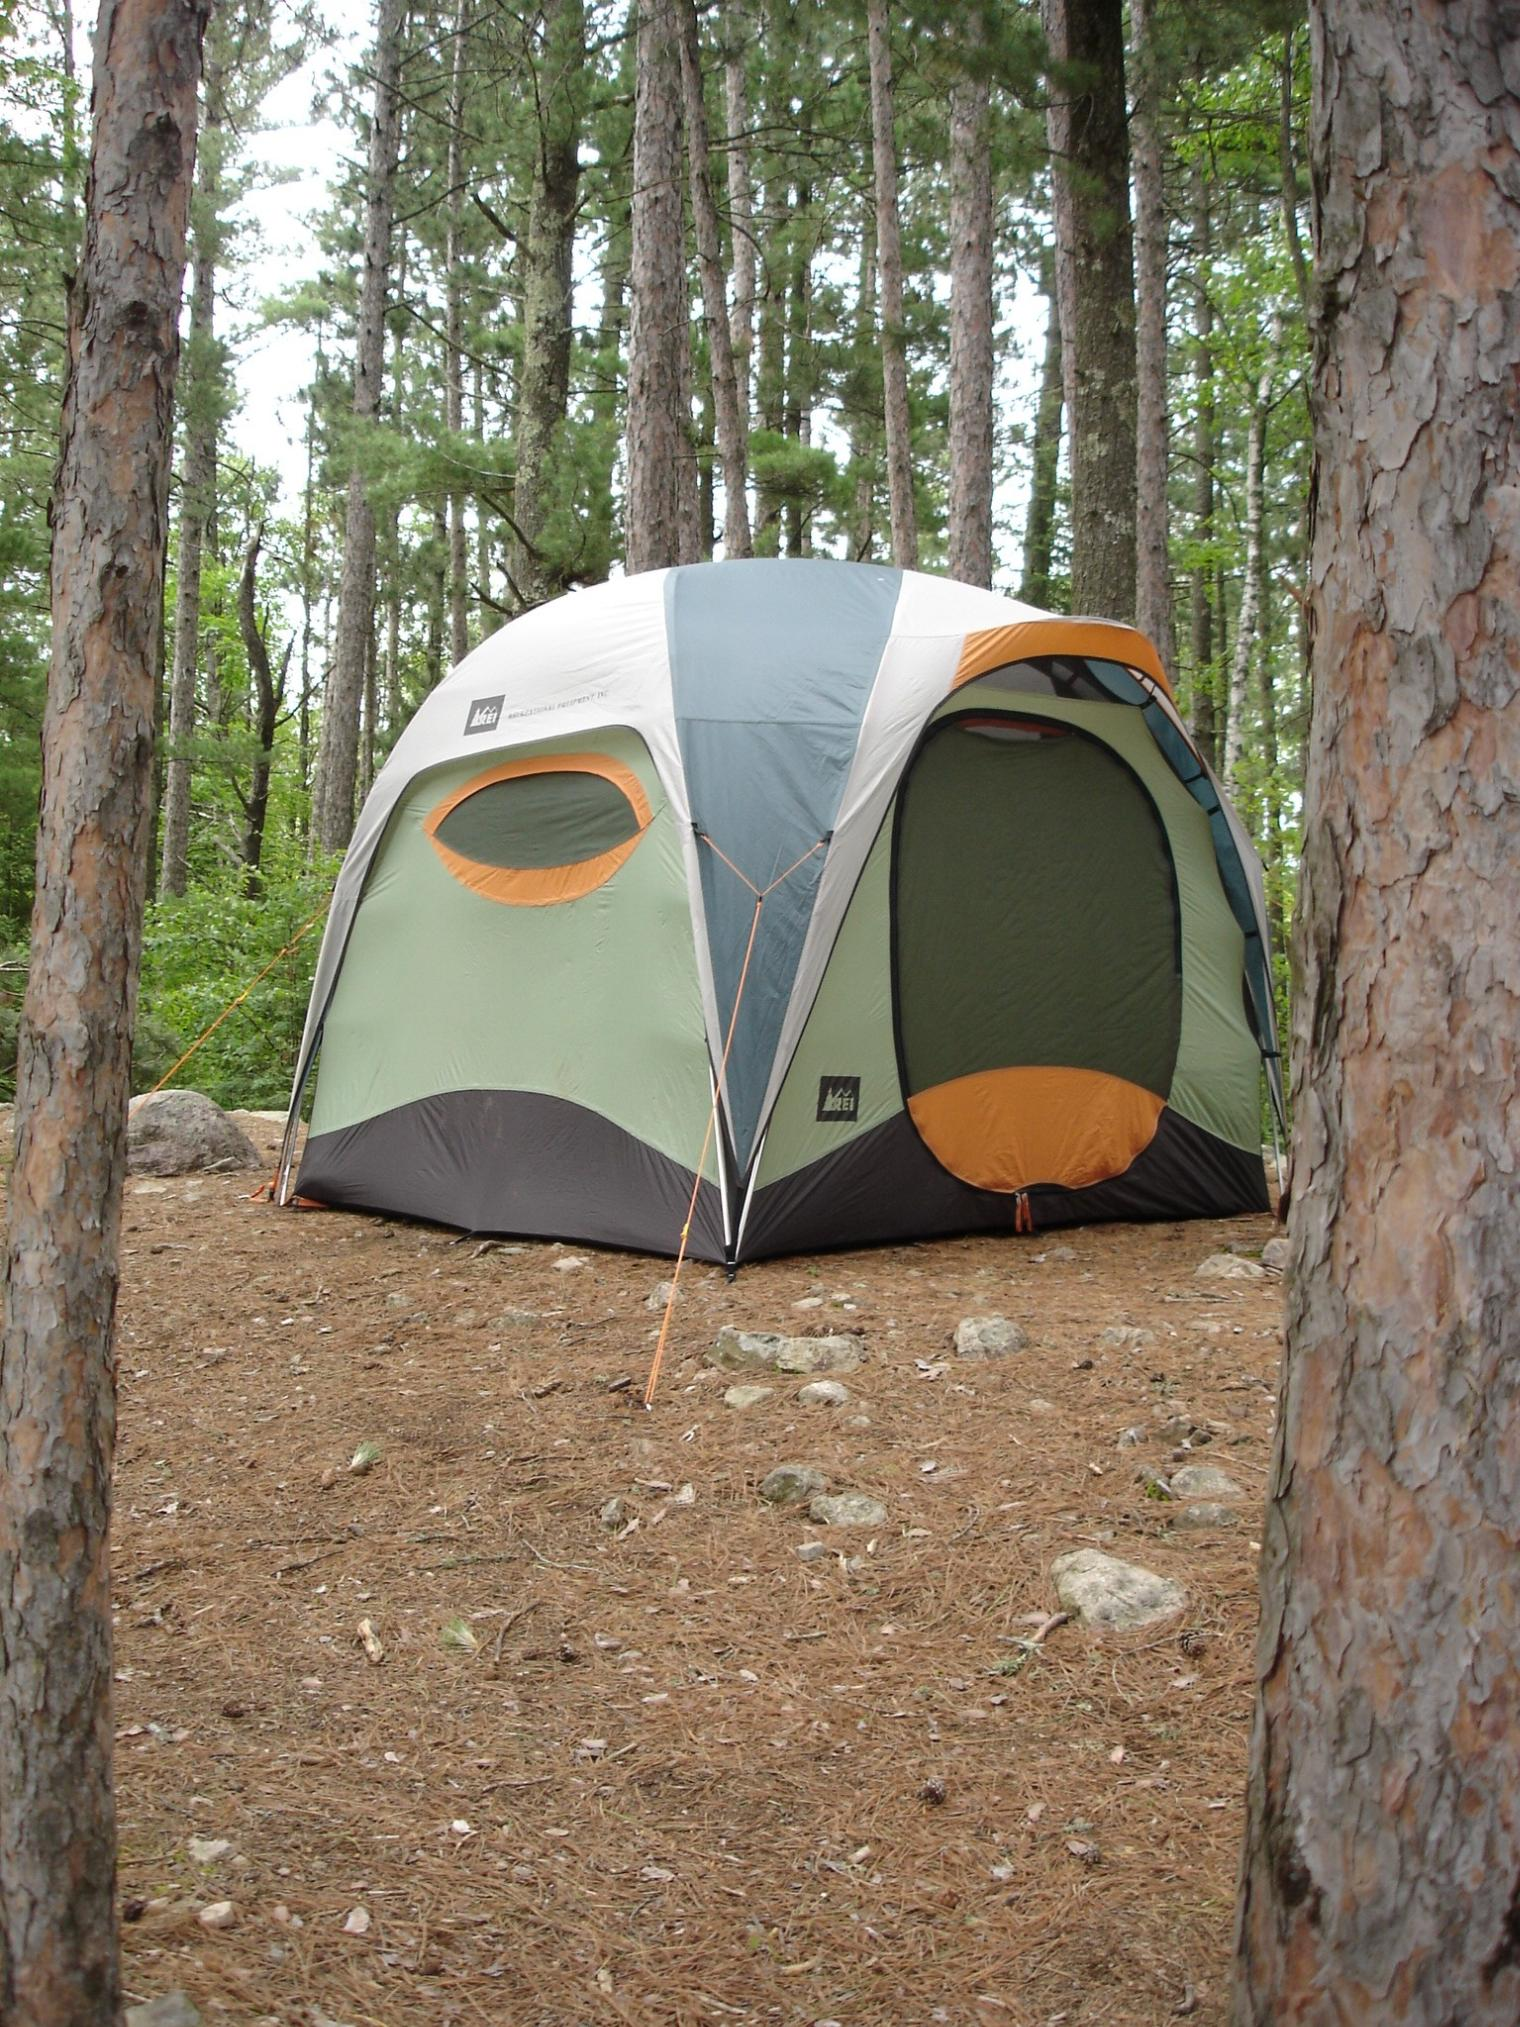 It makes me feel good just looking at u0027em. Is it Spring yet? : eureka equinox tent - memphite.com